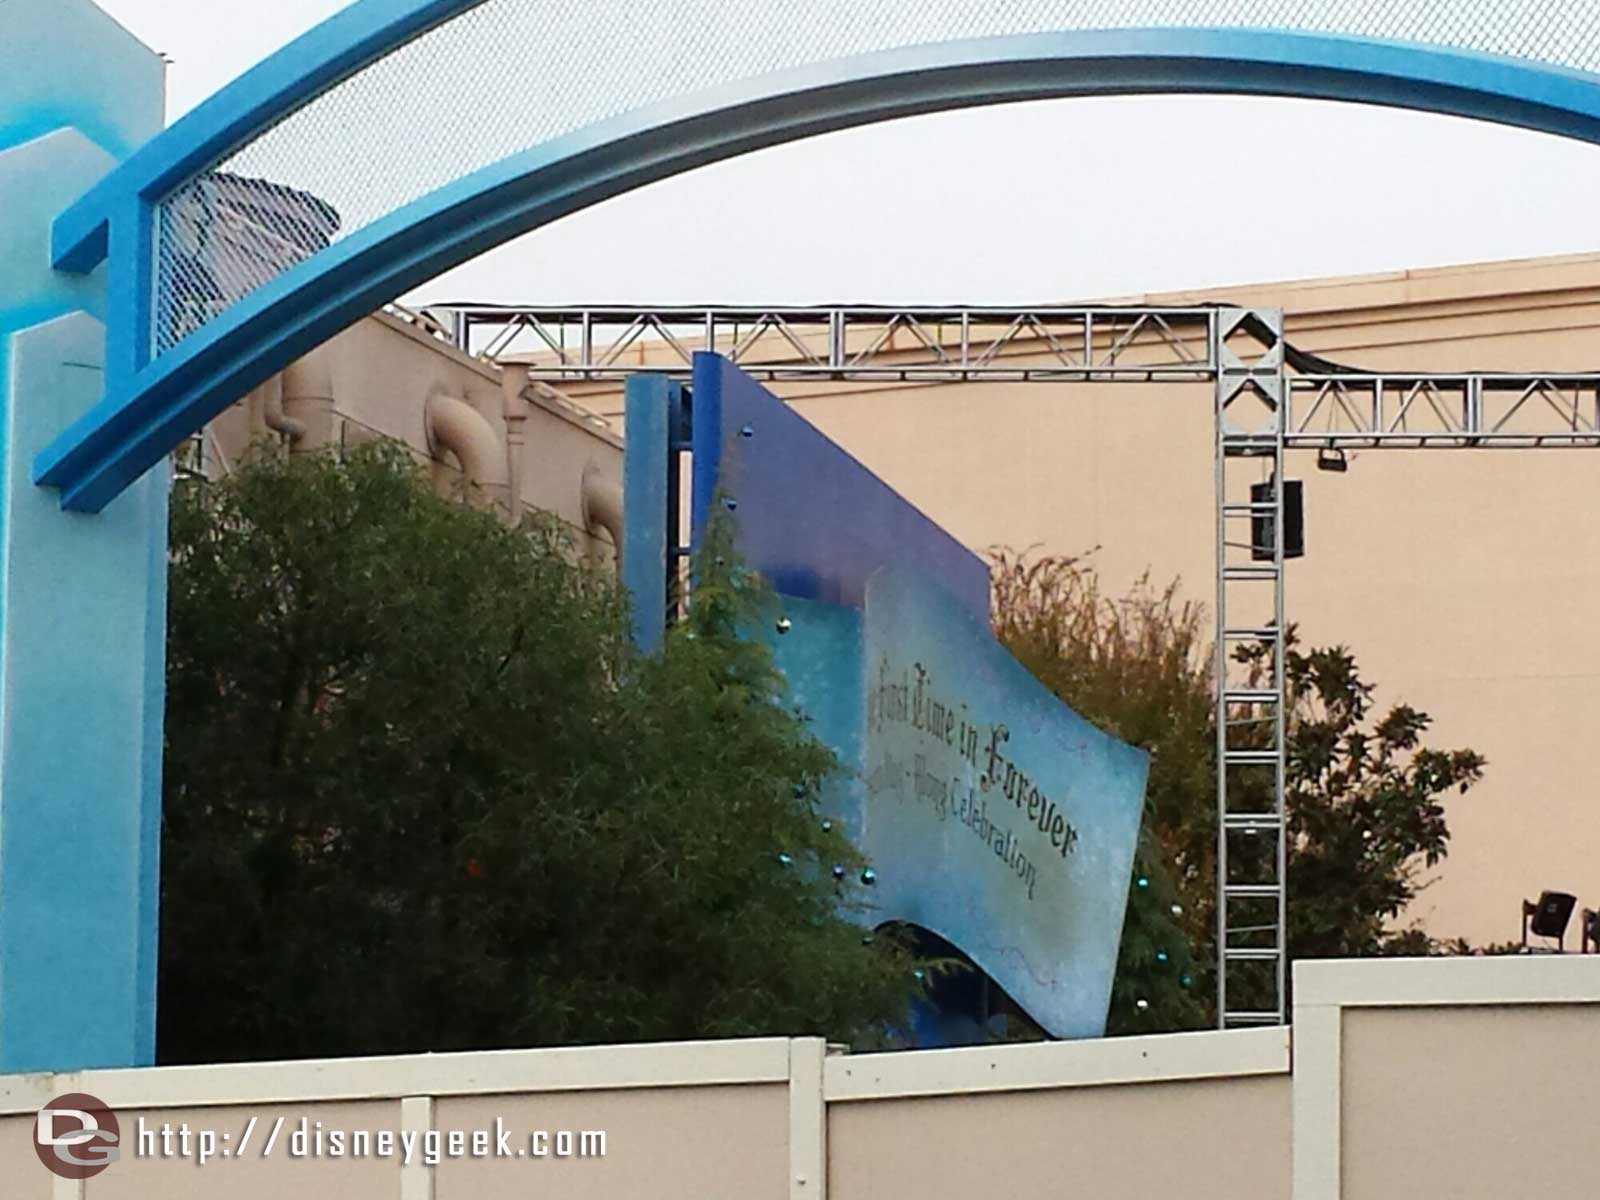 For the First Time in Forever sing along sign has replaced the Muppets